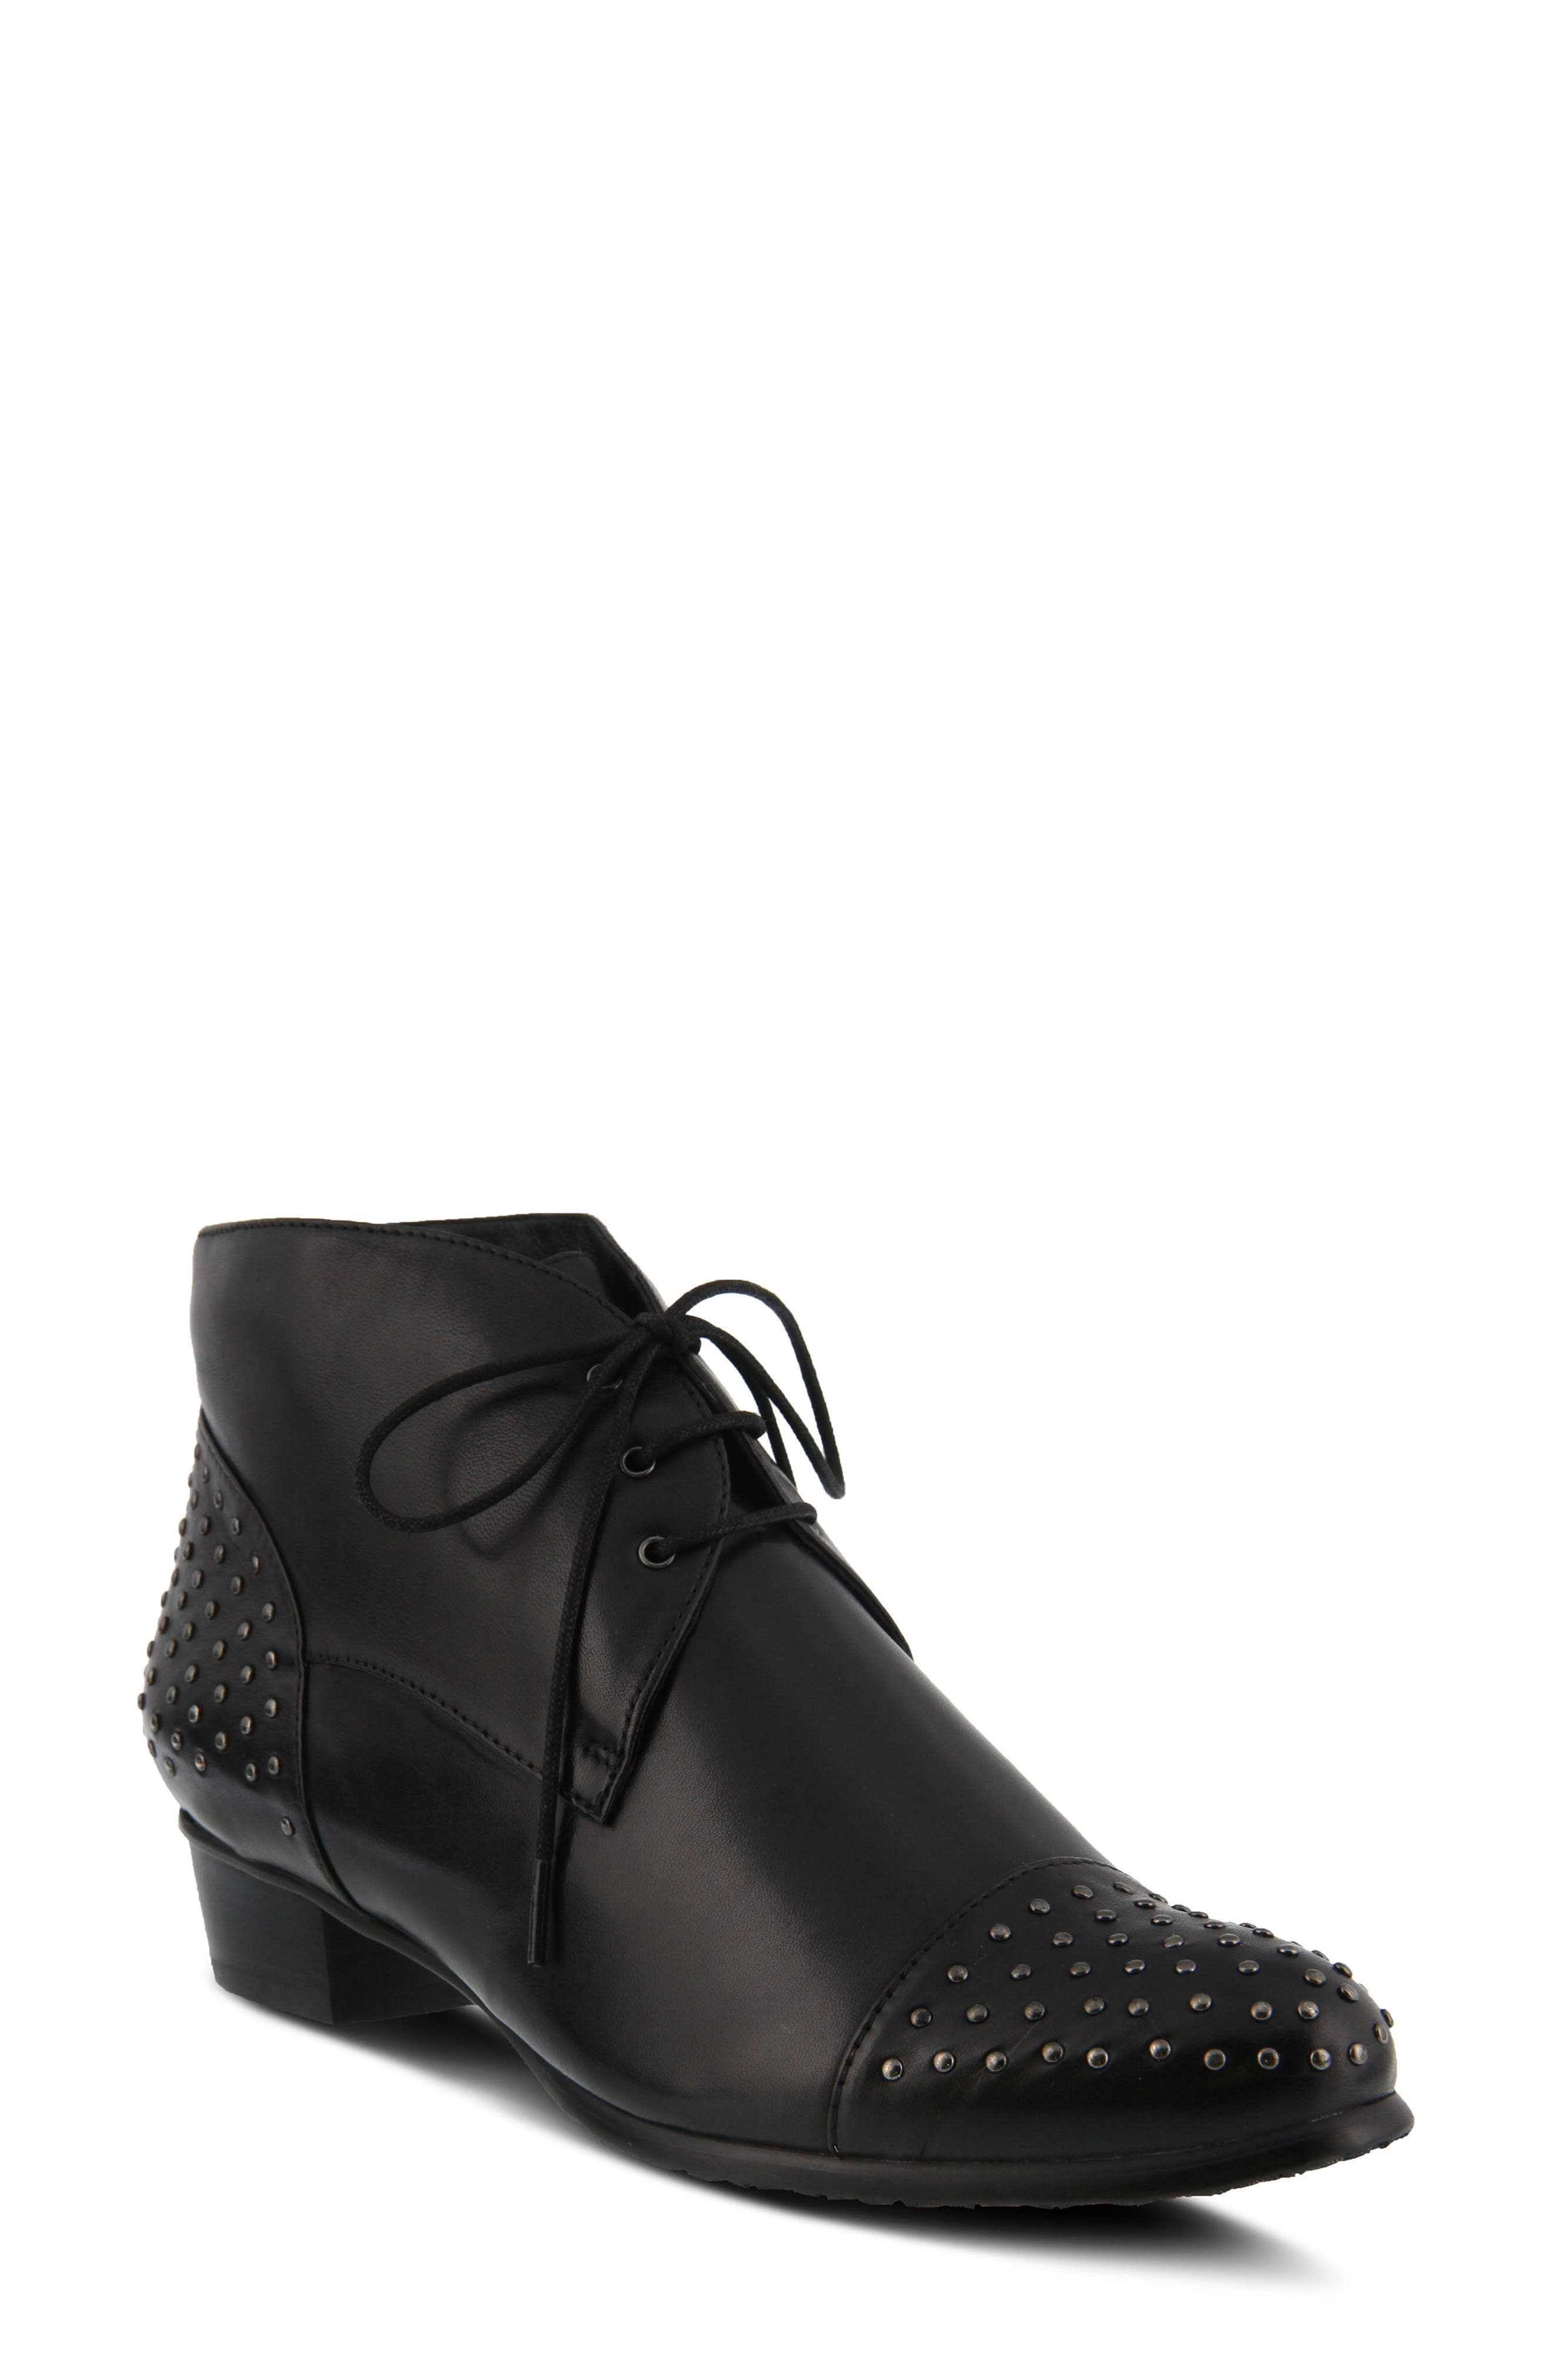 Giovanna Studded Bootie,                         Main,                         color, BLACK LEATHER